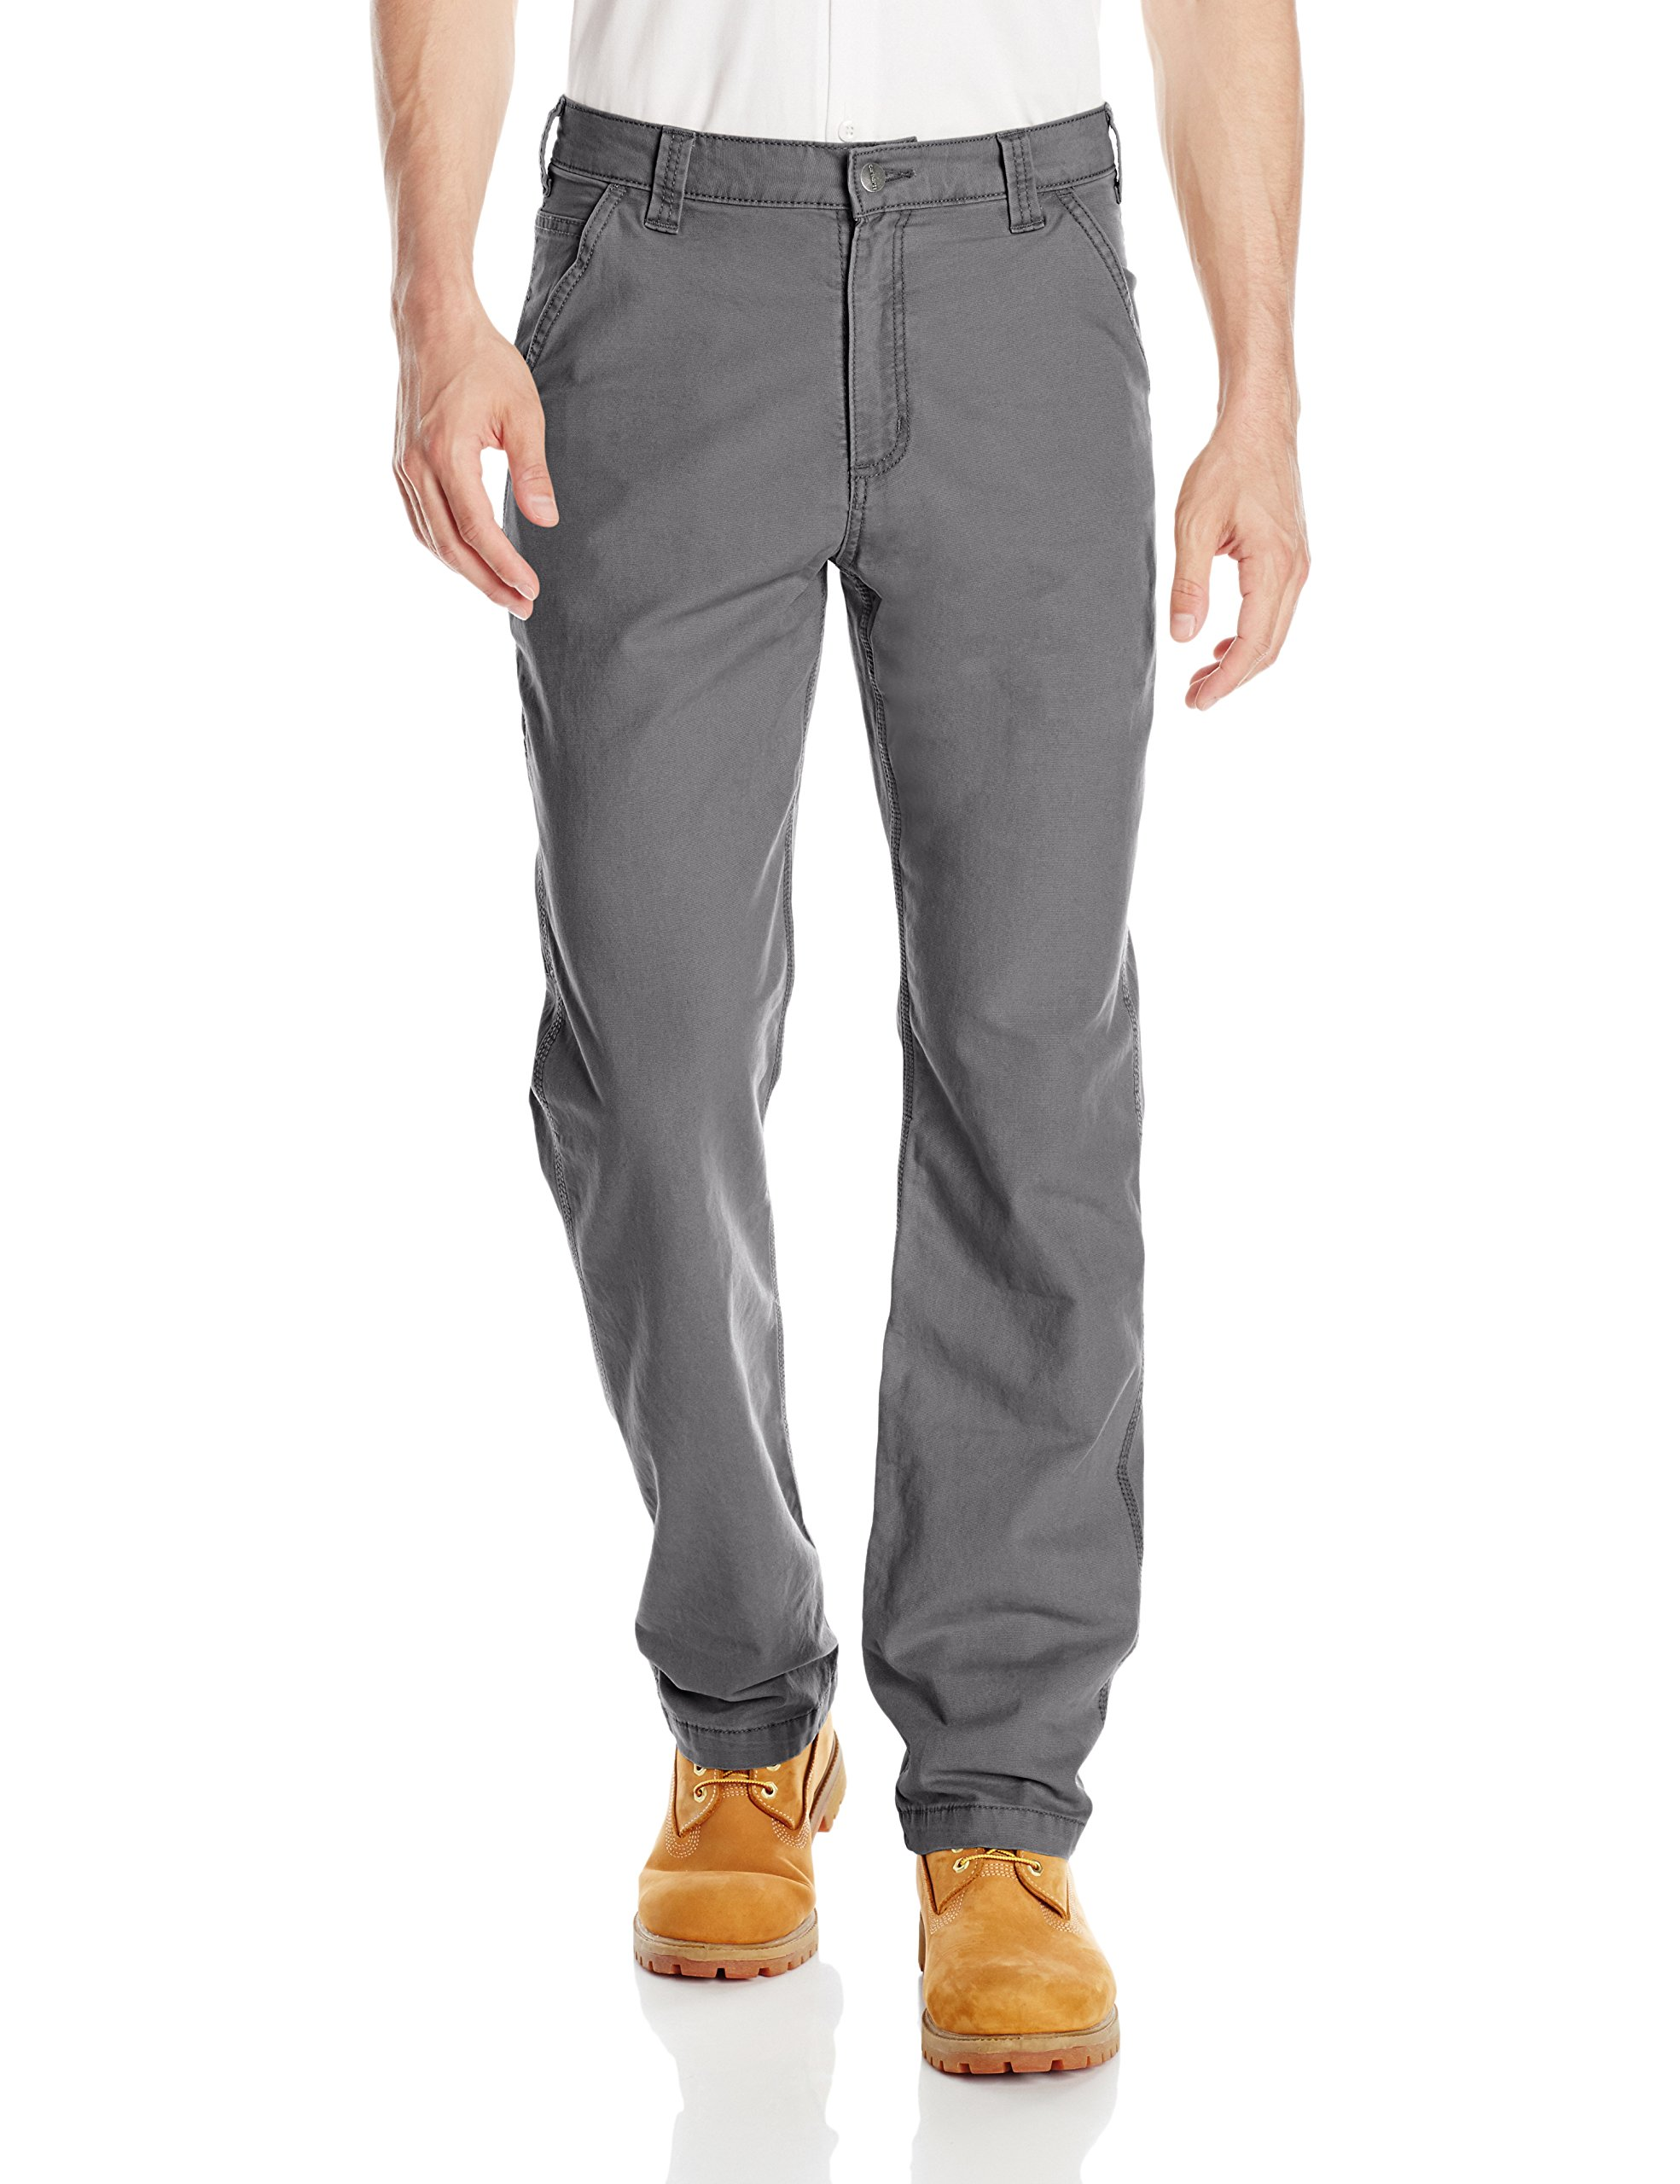 Carhartt Men's Rugged Flex Rigby Dungaree Pant, Gravel, 36W x 32L by Carhartt